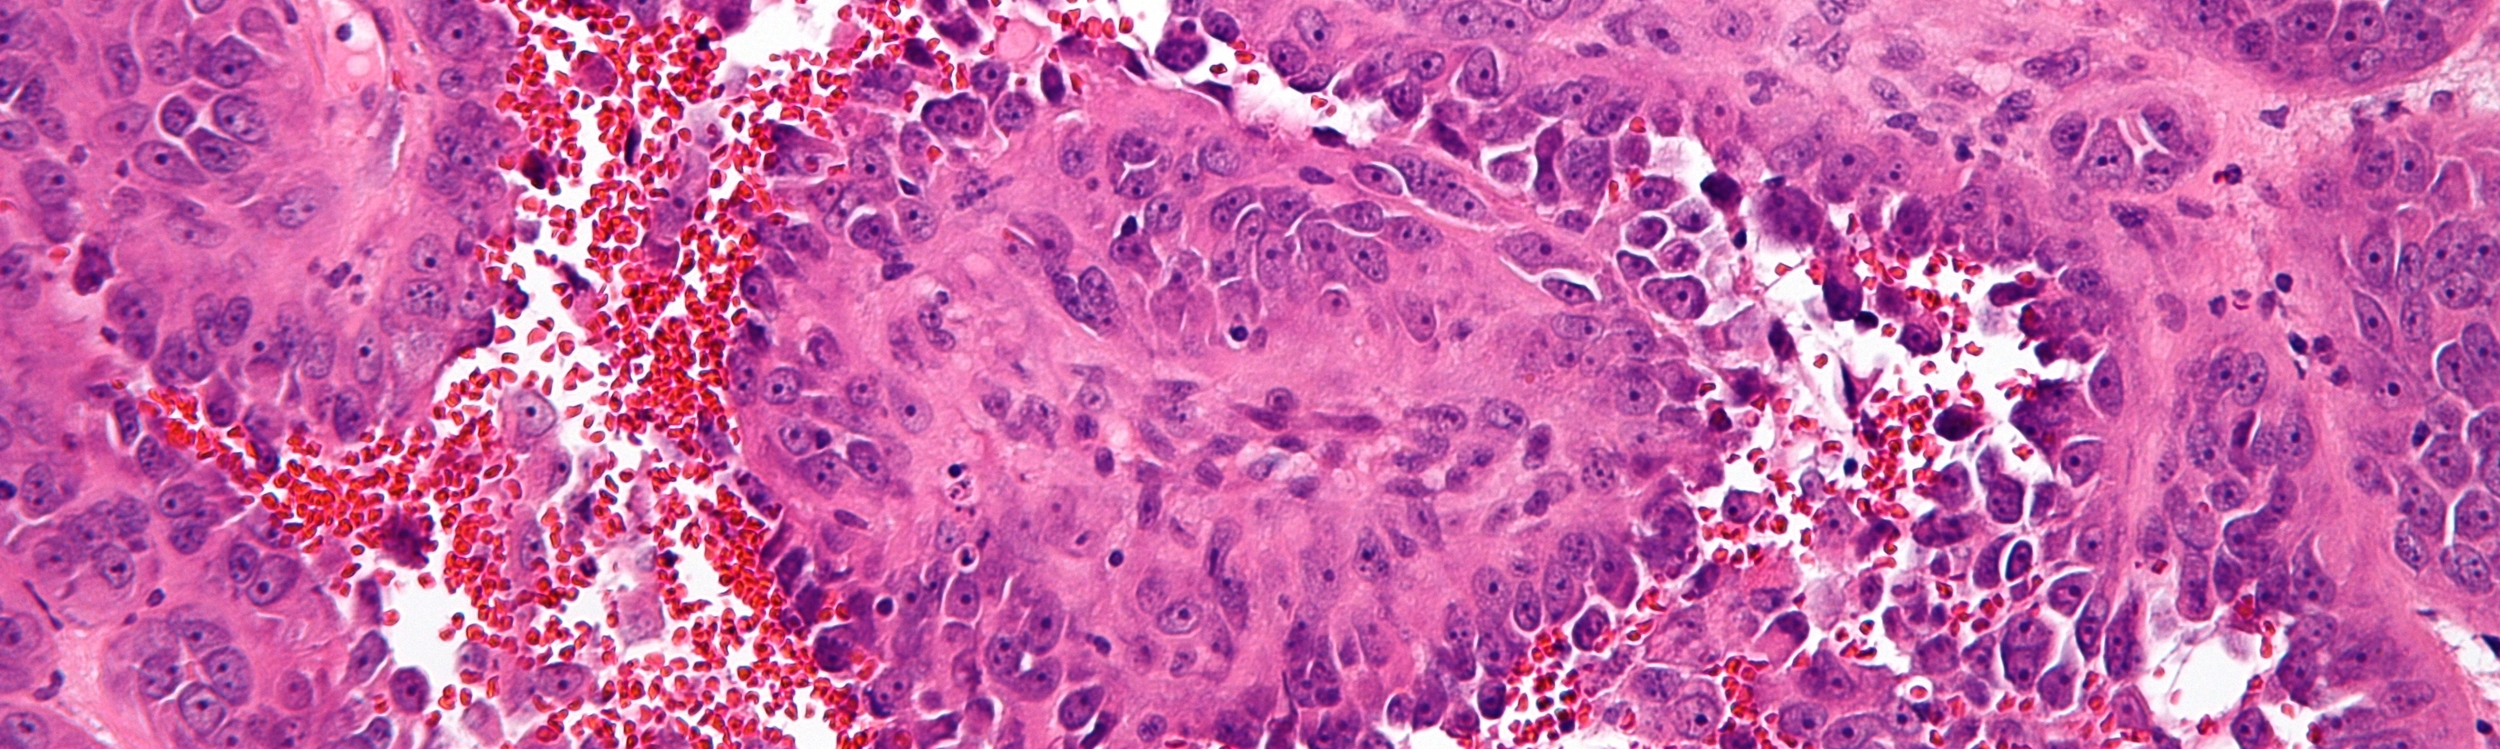 Angiosarcoma of the liver (image via Wikimedia Commons)